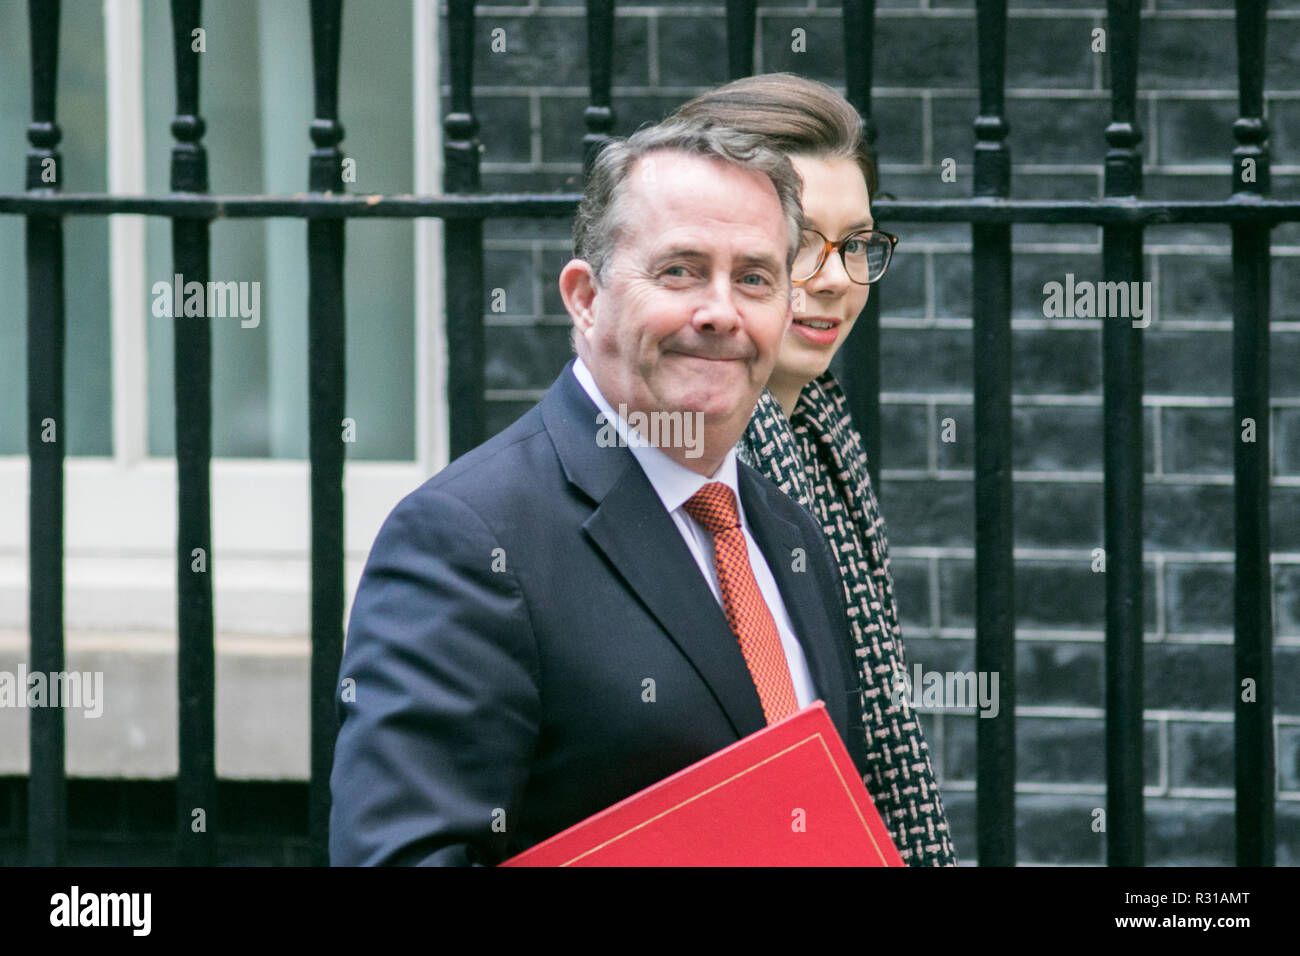 London UK. 21st November 2018. DR Liam Fox MP for East Kilbride and Secretary of State for International Trade and President of the Board of Trade arrives at Downing Street with an aide Credit: amer ghazzal/Alamy Live News - Stock Image